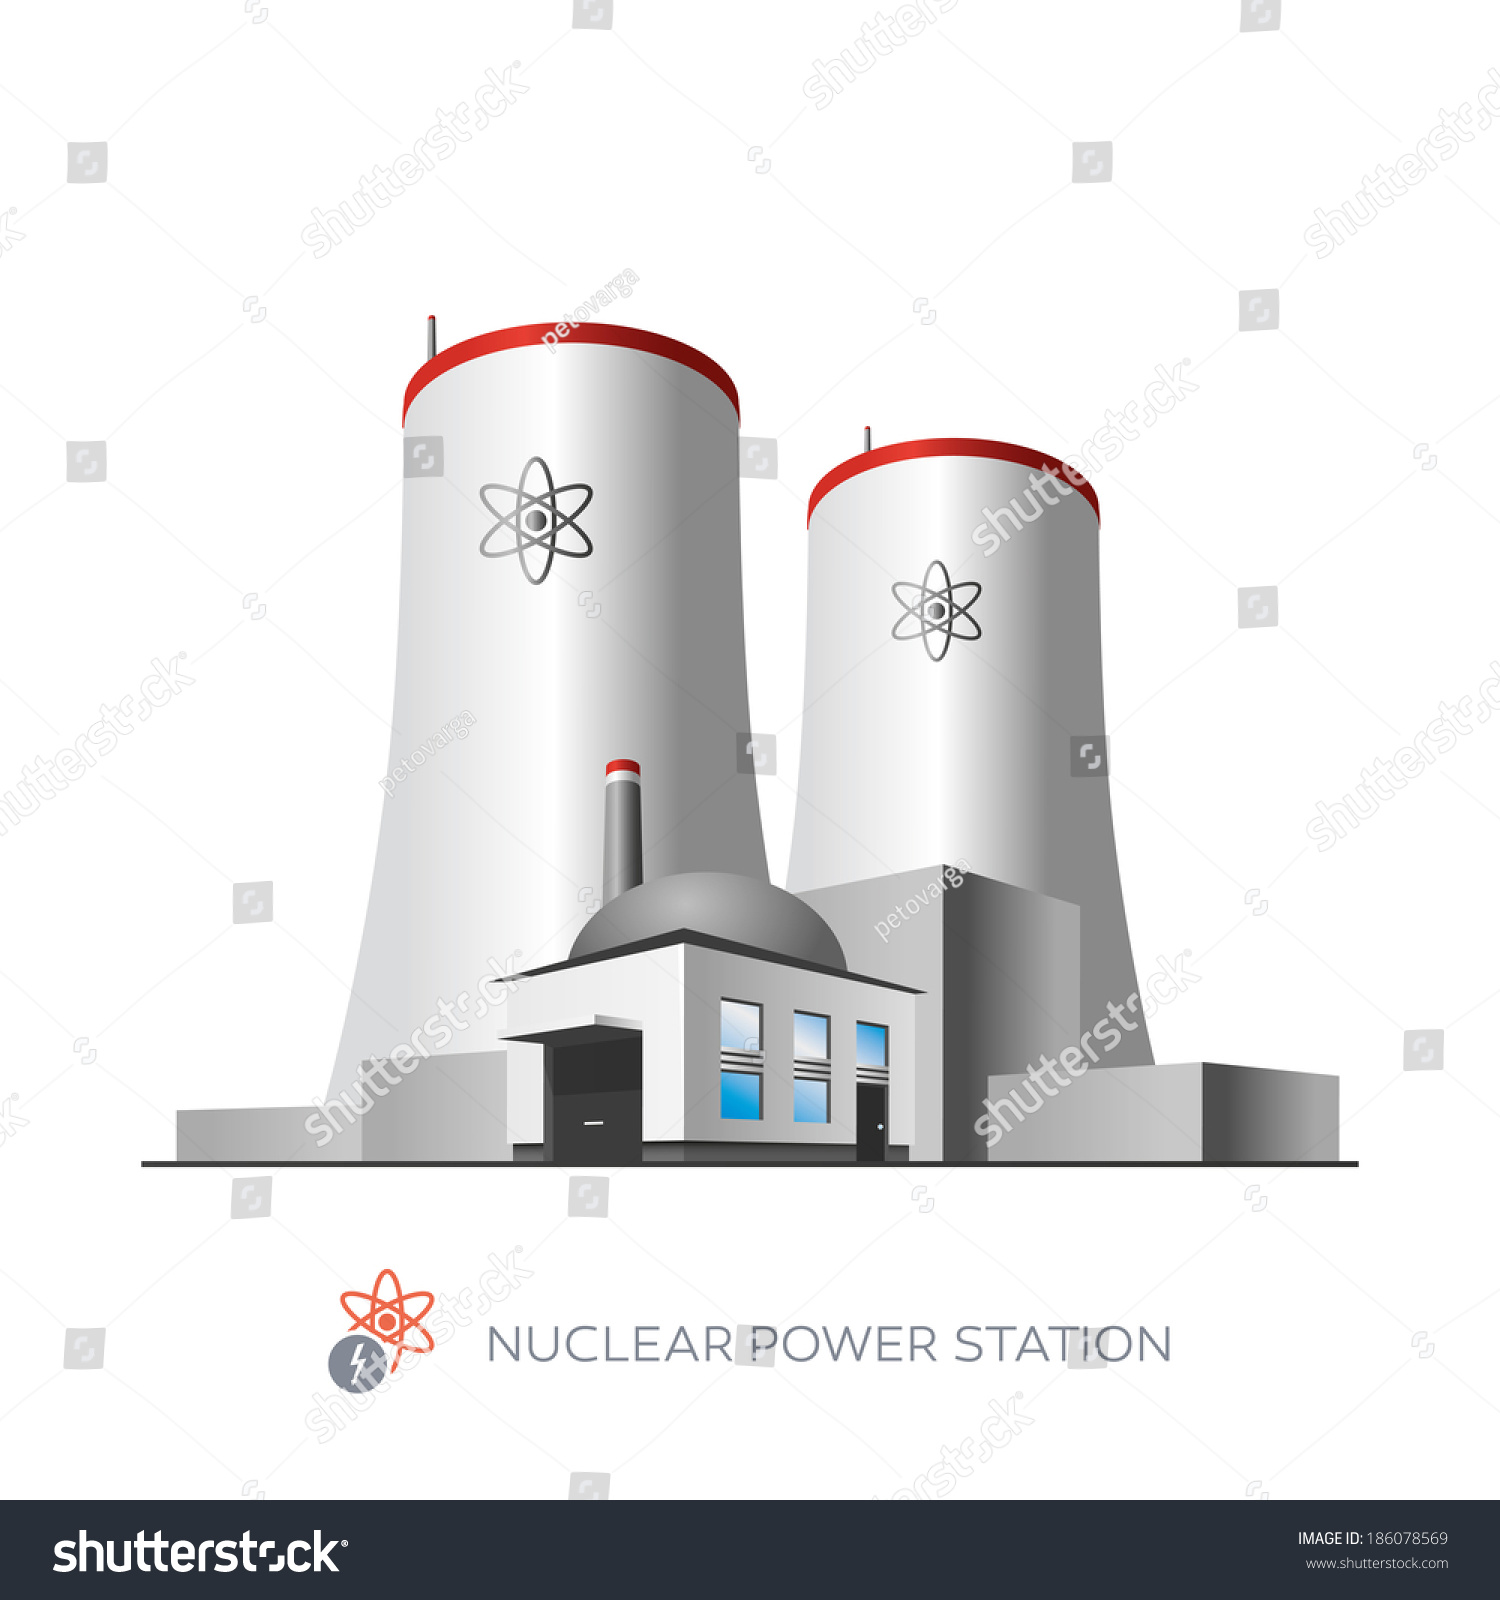 Isolated Nuclear Power Plant Icon On Stock Vector Royalty Free Diagram Pictures White Background In Cartoon Style